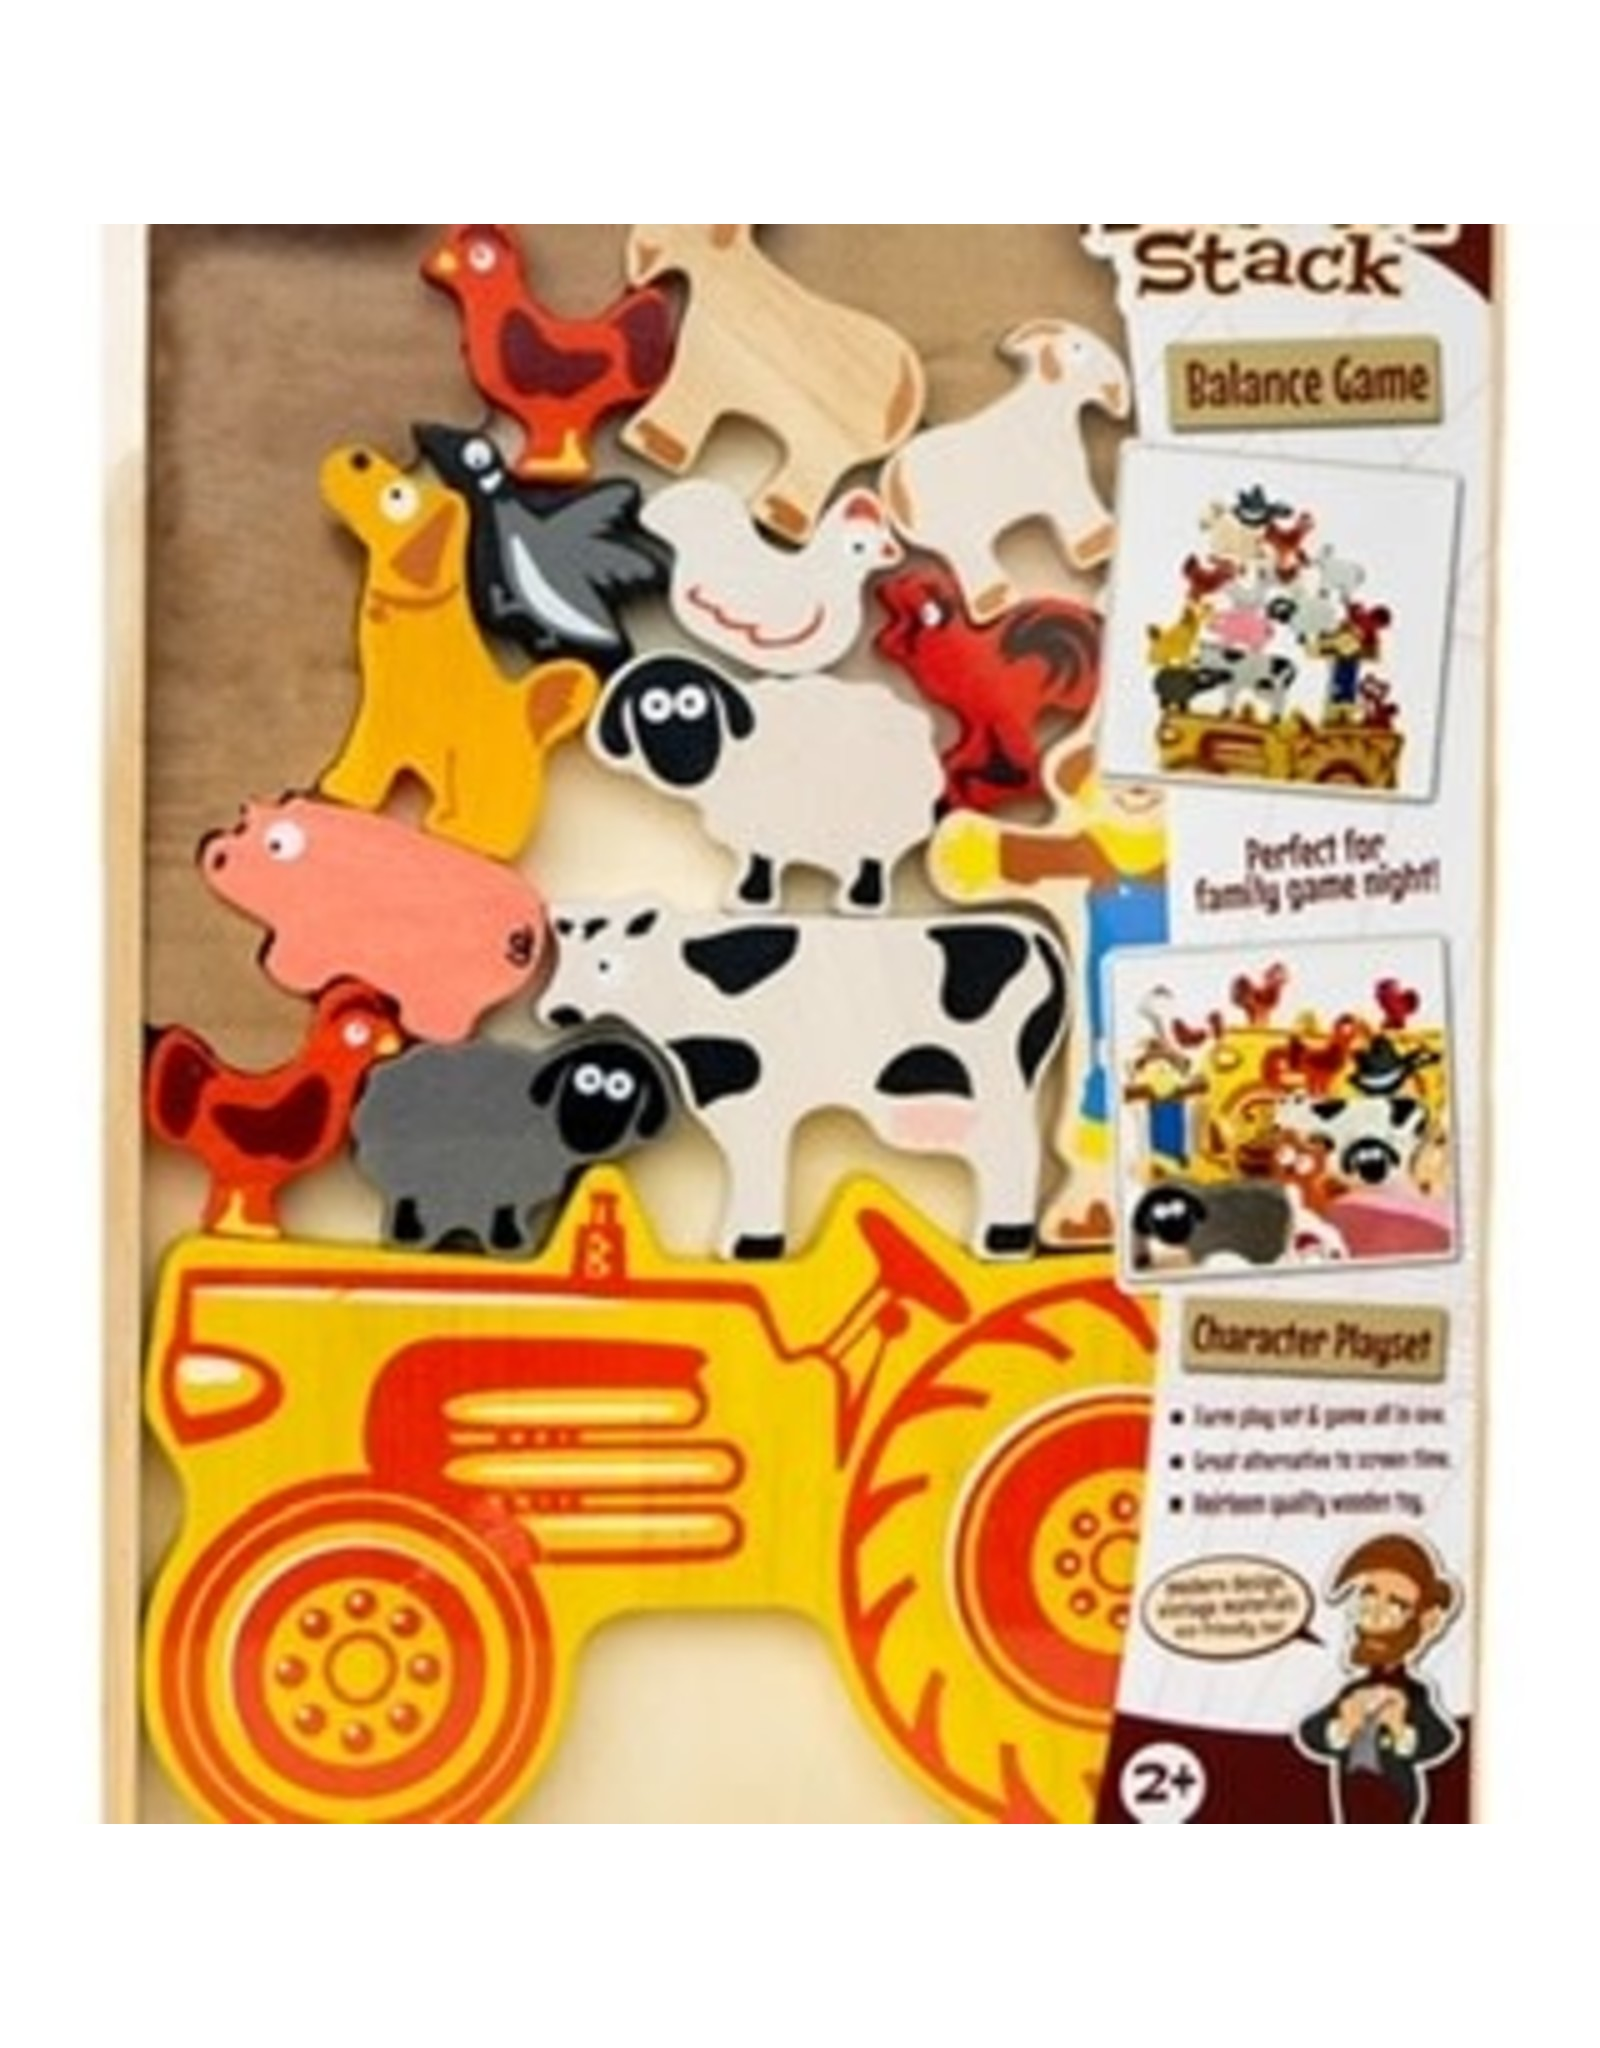 Wooden Tractor Stacker Game